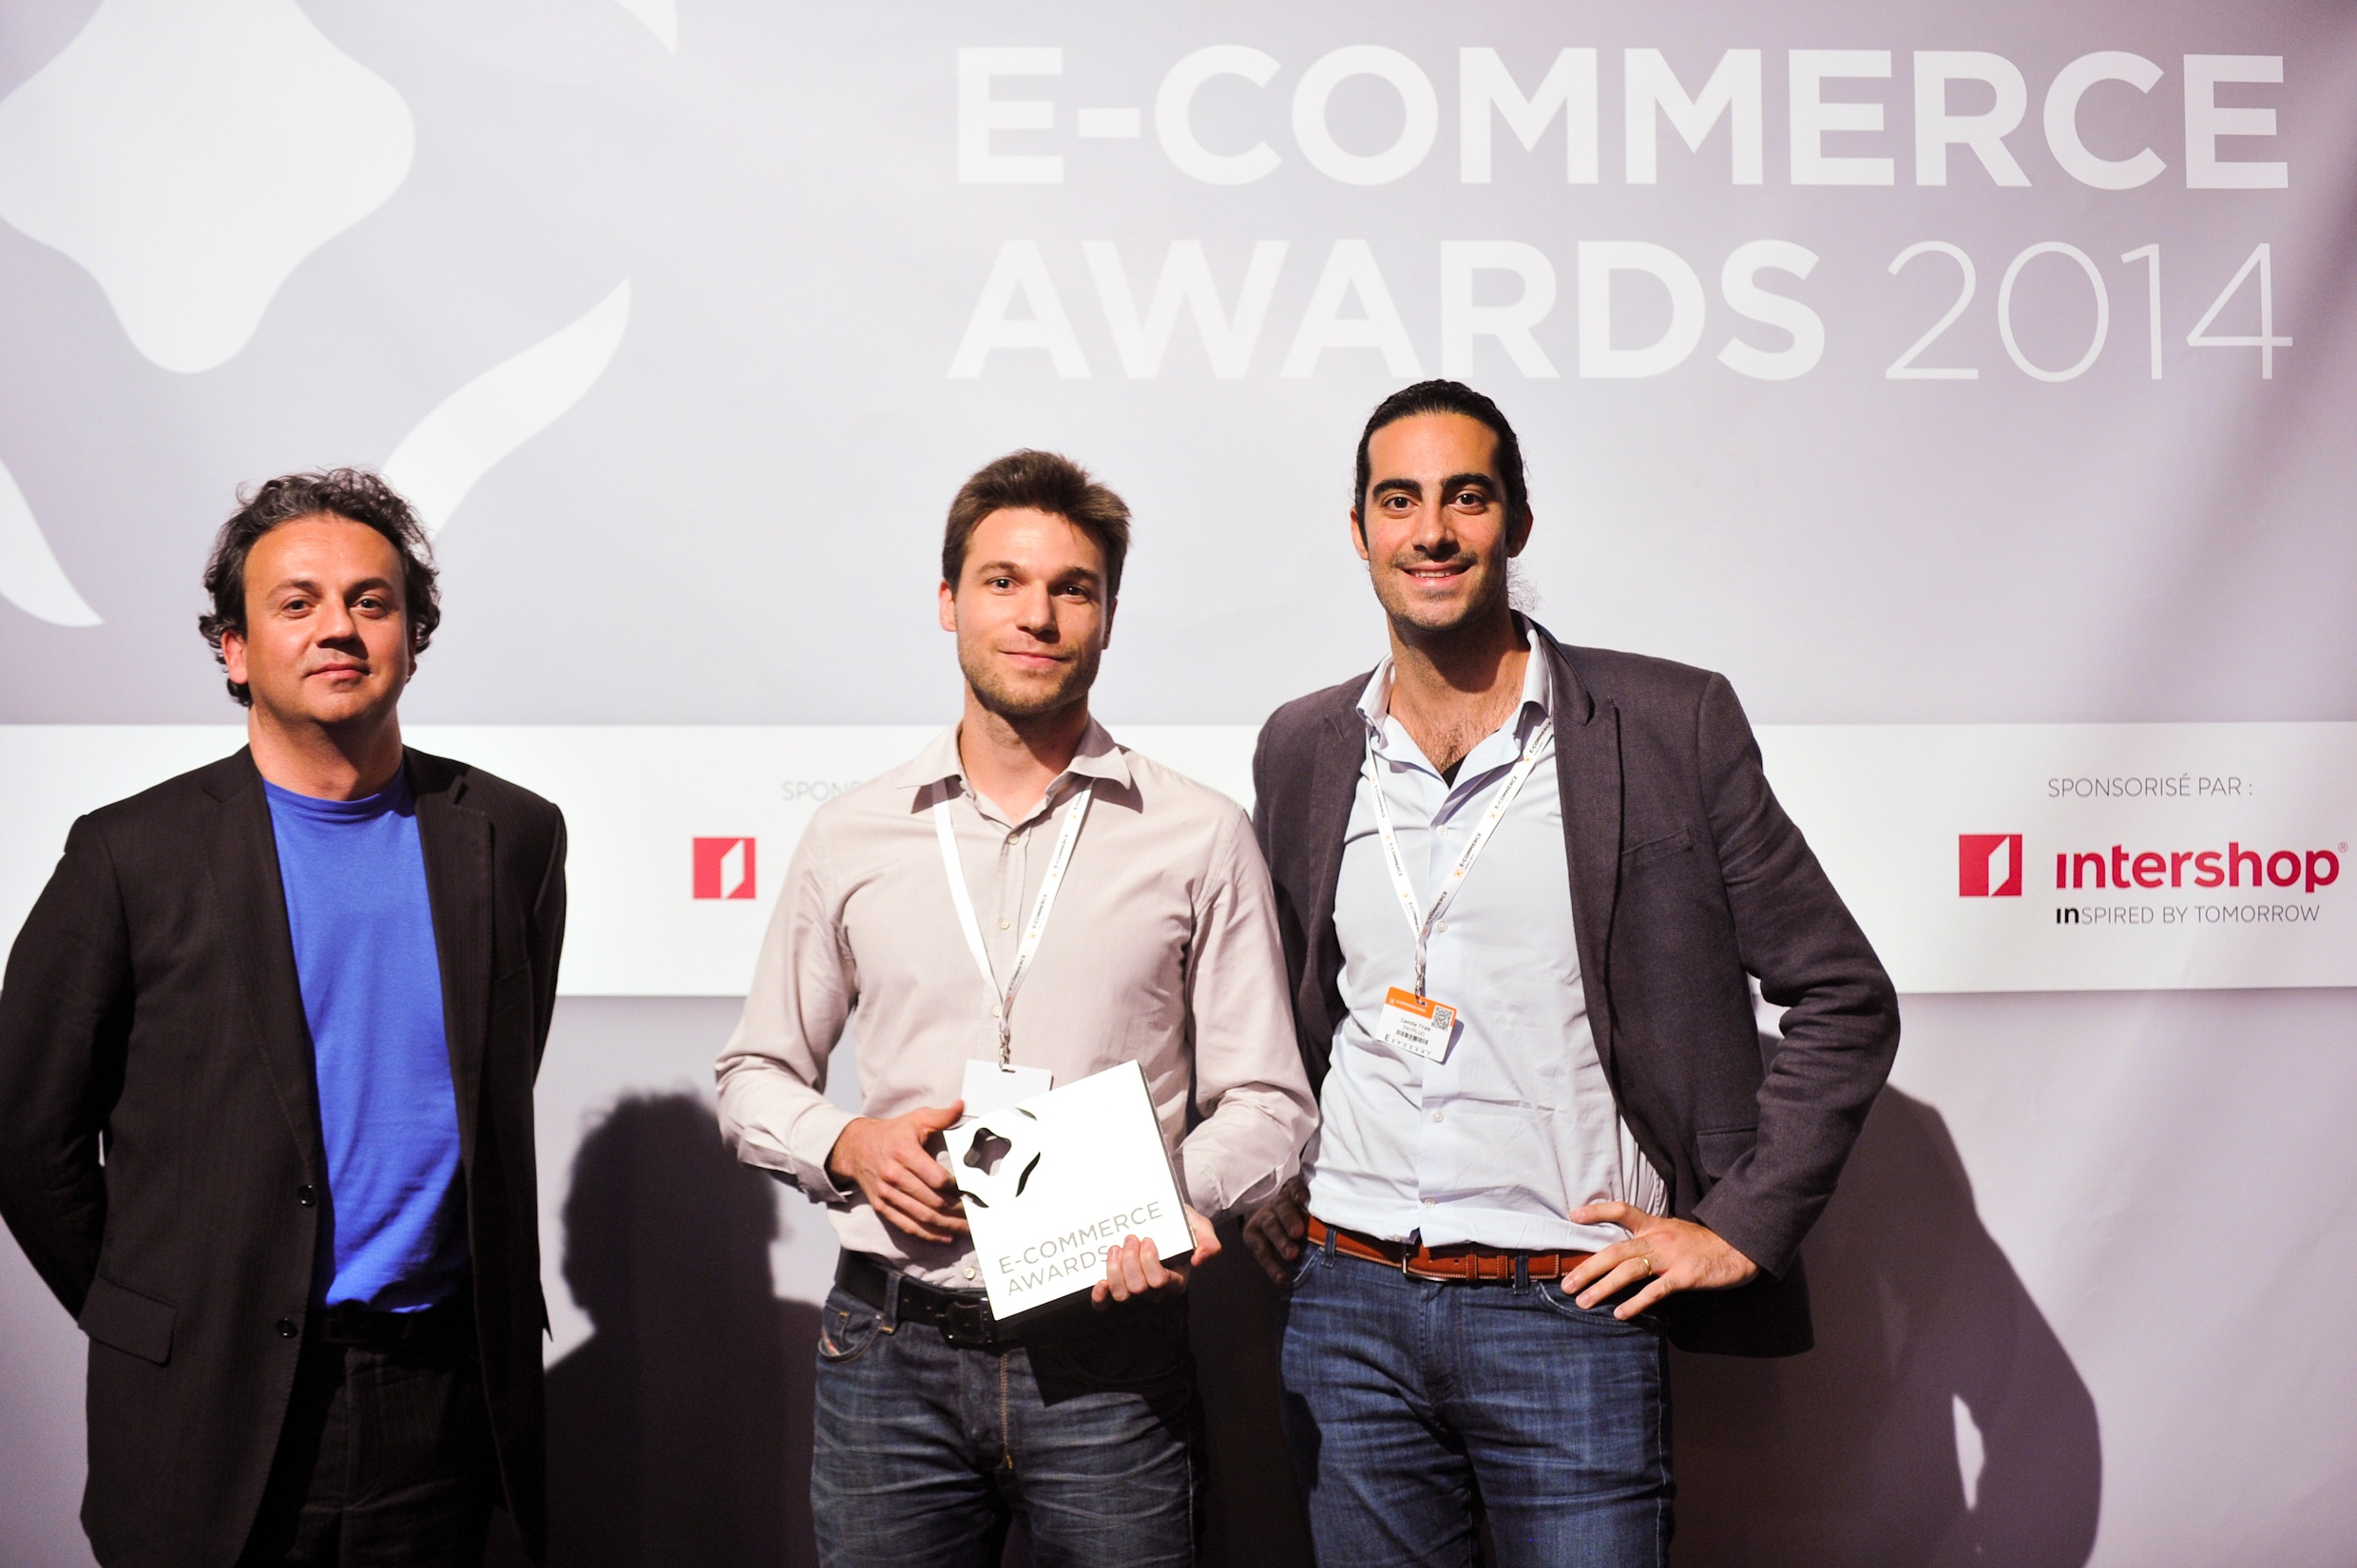 Playplug e-commerce Awards 2014